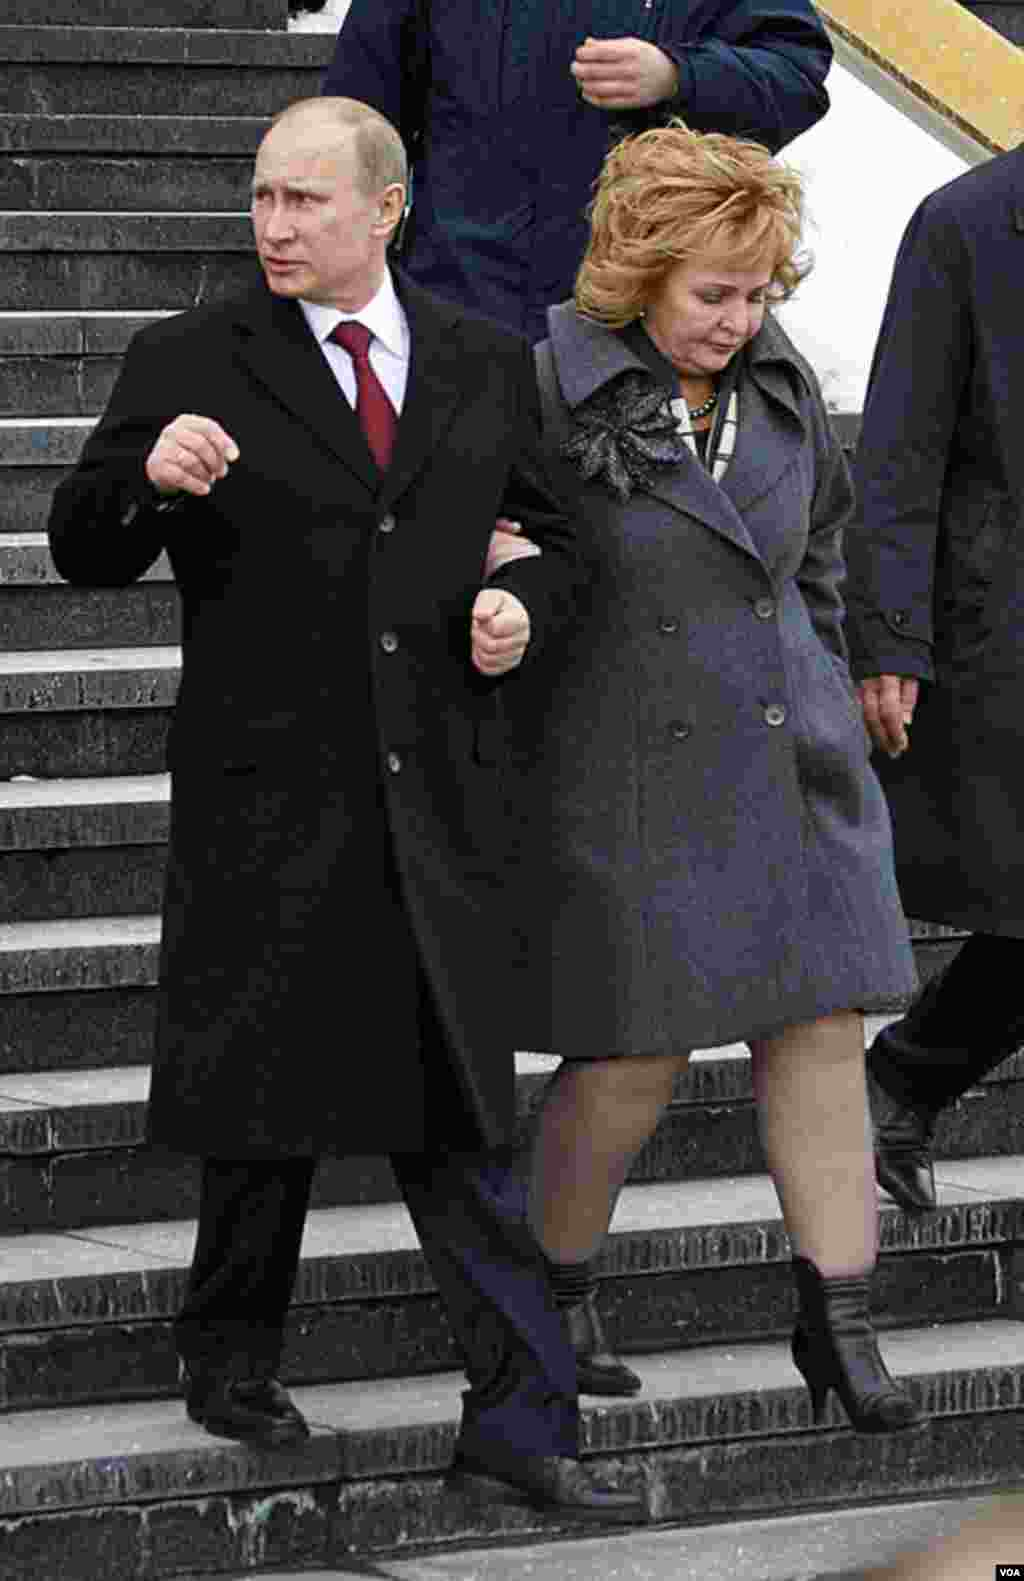 Russian Prime Minister and presidential candidate Vladimir Putin and his wife Lyudmila leave a polling station in Moscow, Russia, March 4, 2012. (AP)